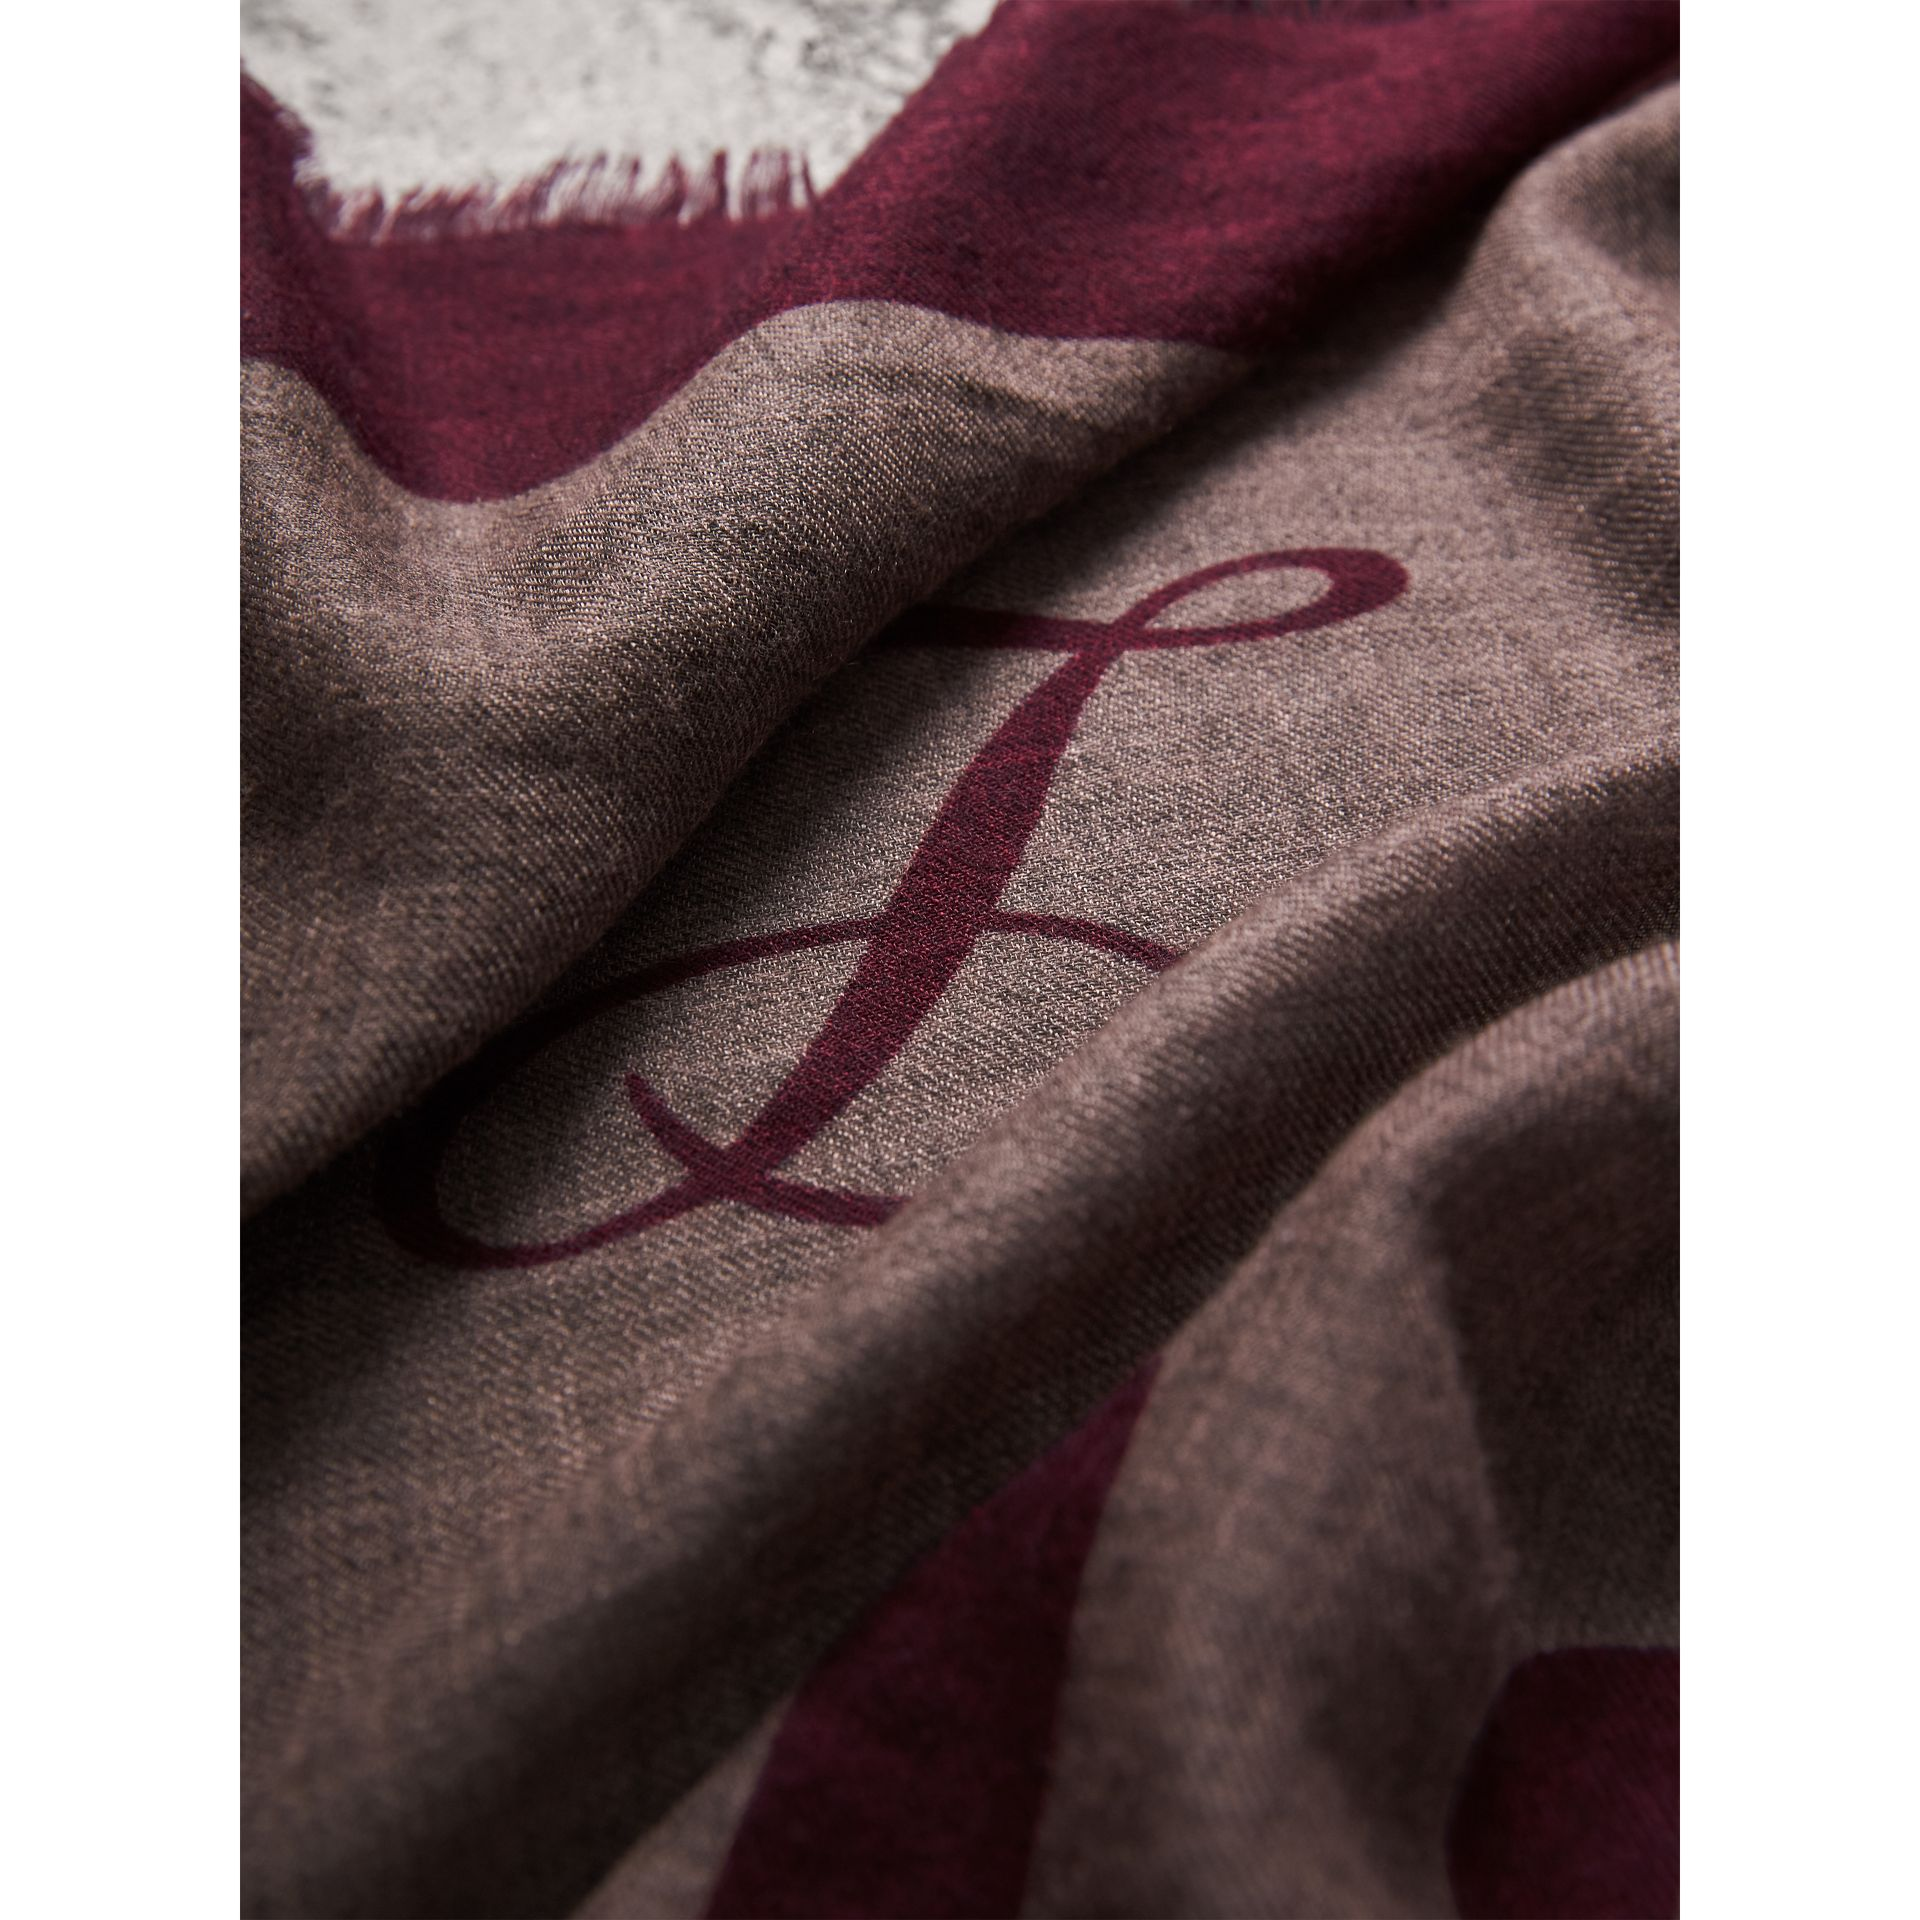 Graphic Print Motif  Lightweight Cashmere Scarf in Ash Rose - Women | Burberry United Kingdom - gallery image 2